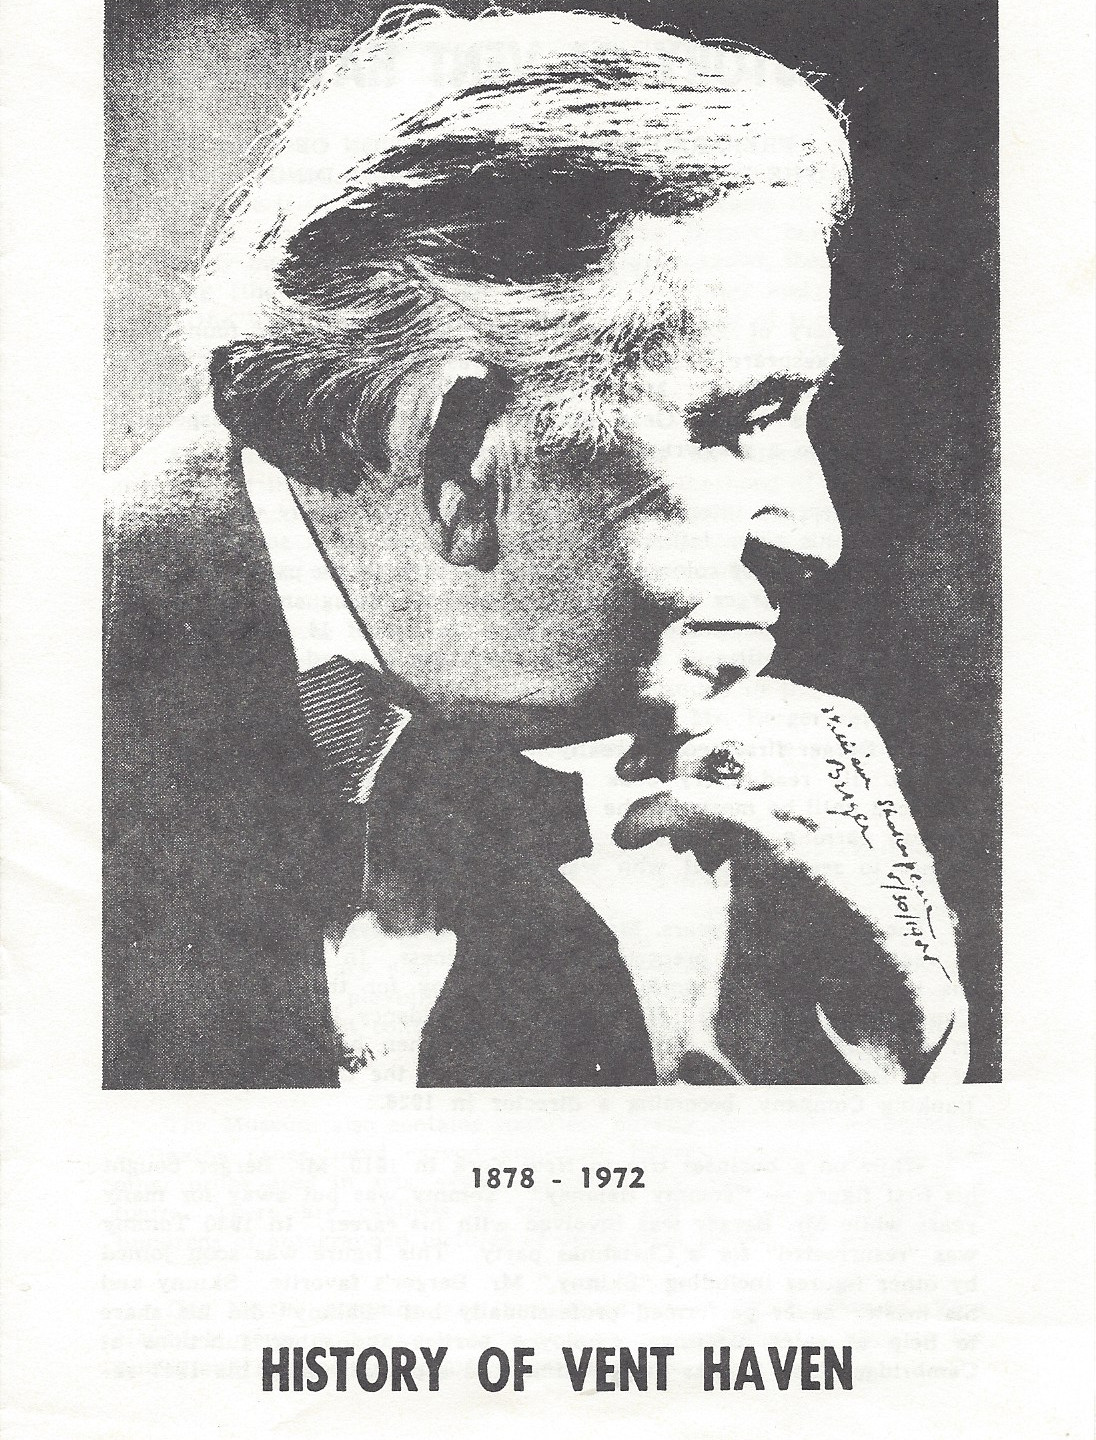 First brochure (1st published 1973)